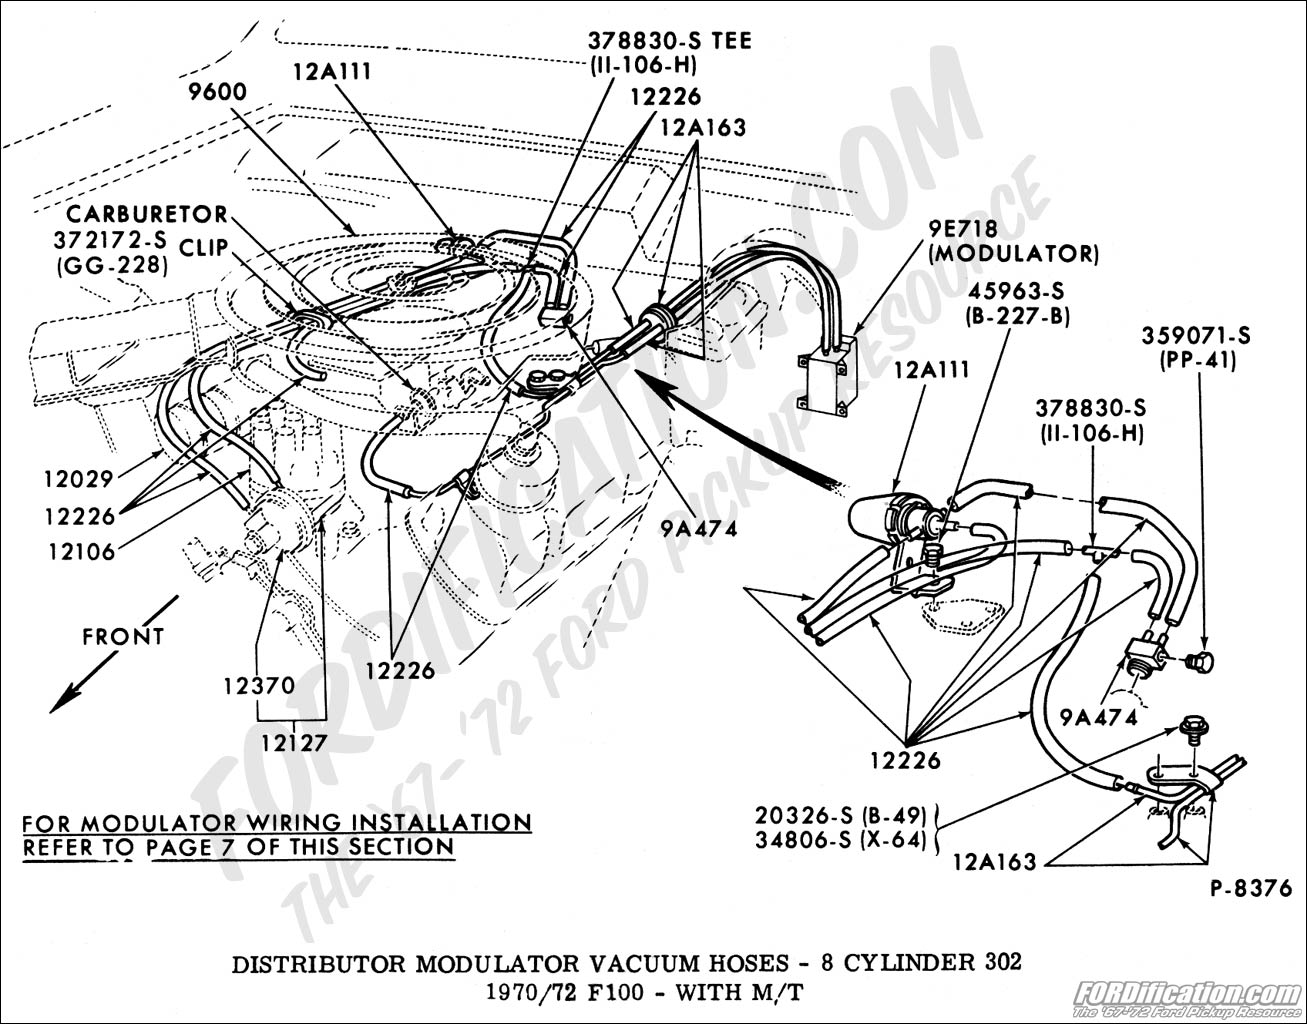 hight resolution of 1969 mustang engine diagram wiring library 1970 mustang clutch diagram as well on vacuum diagram 1969 mustang 302